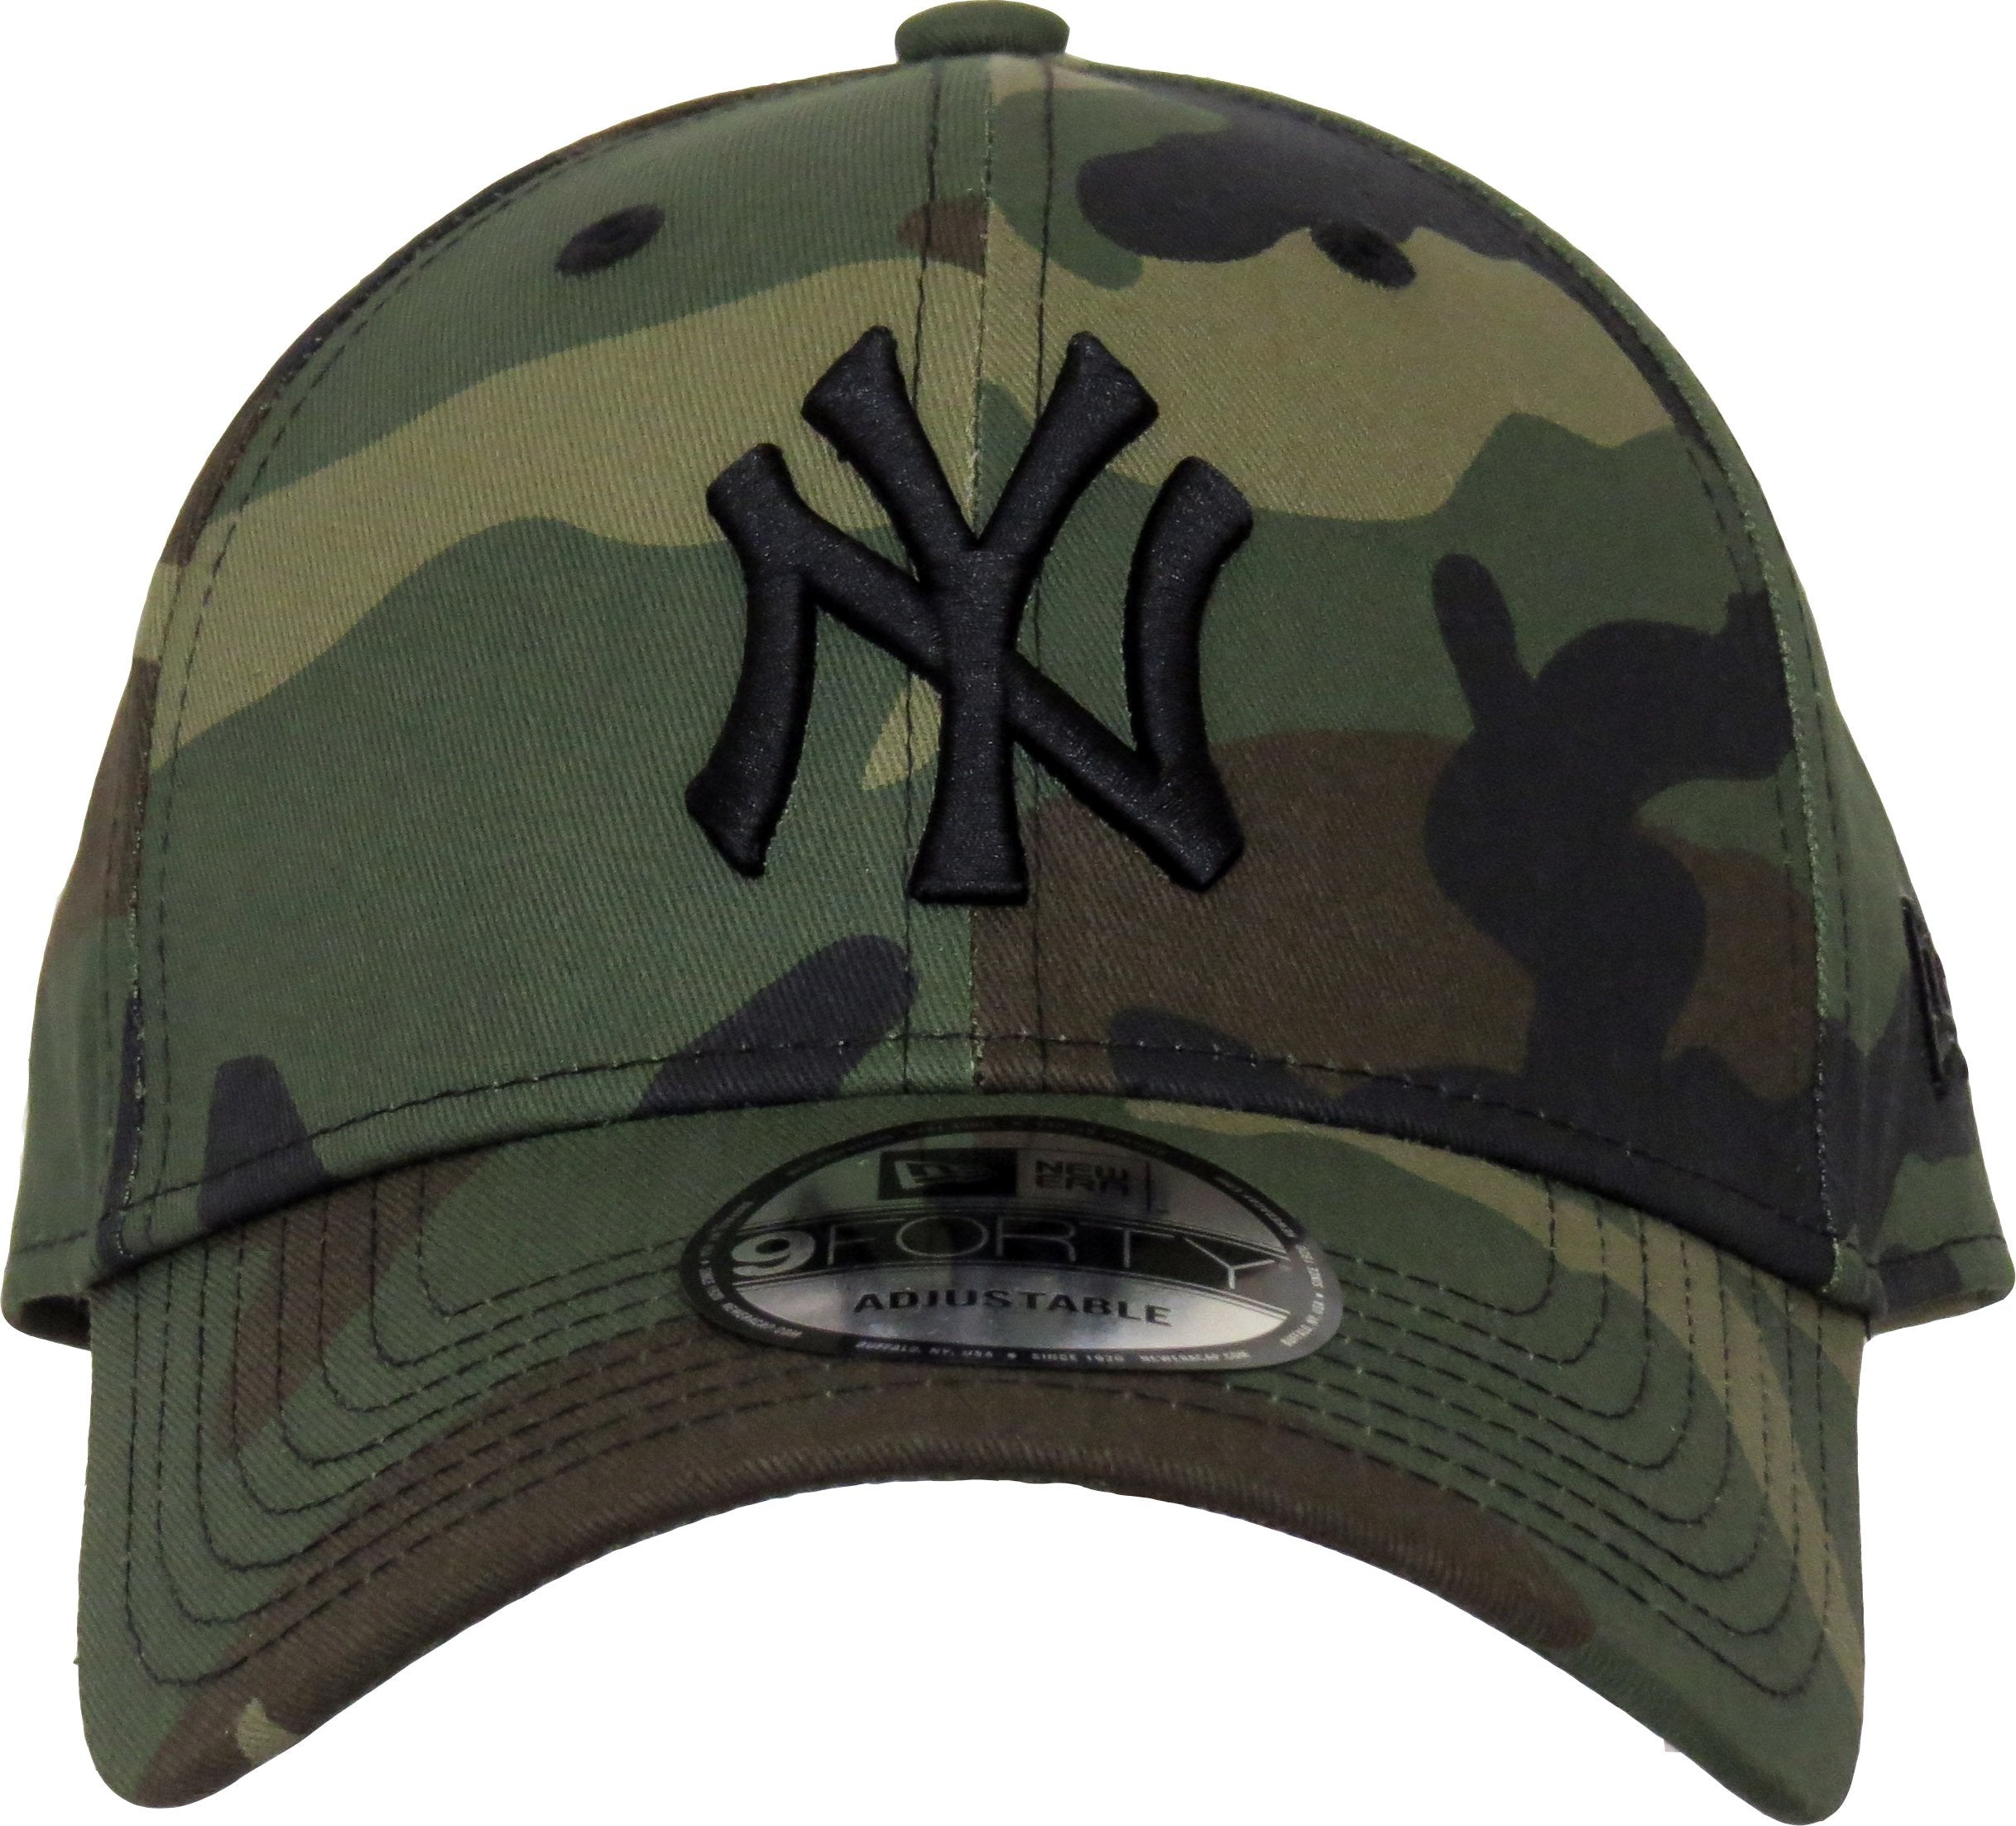 the best attitude d4395 34384 NY Yankees New Era 940 League Essential Kids Baseball Cap - Camo (Ages 4 -  10 years)